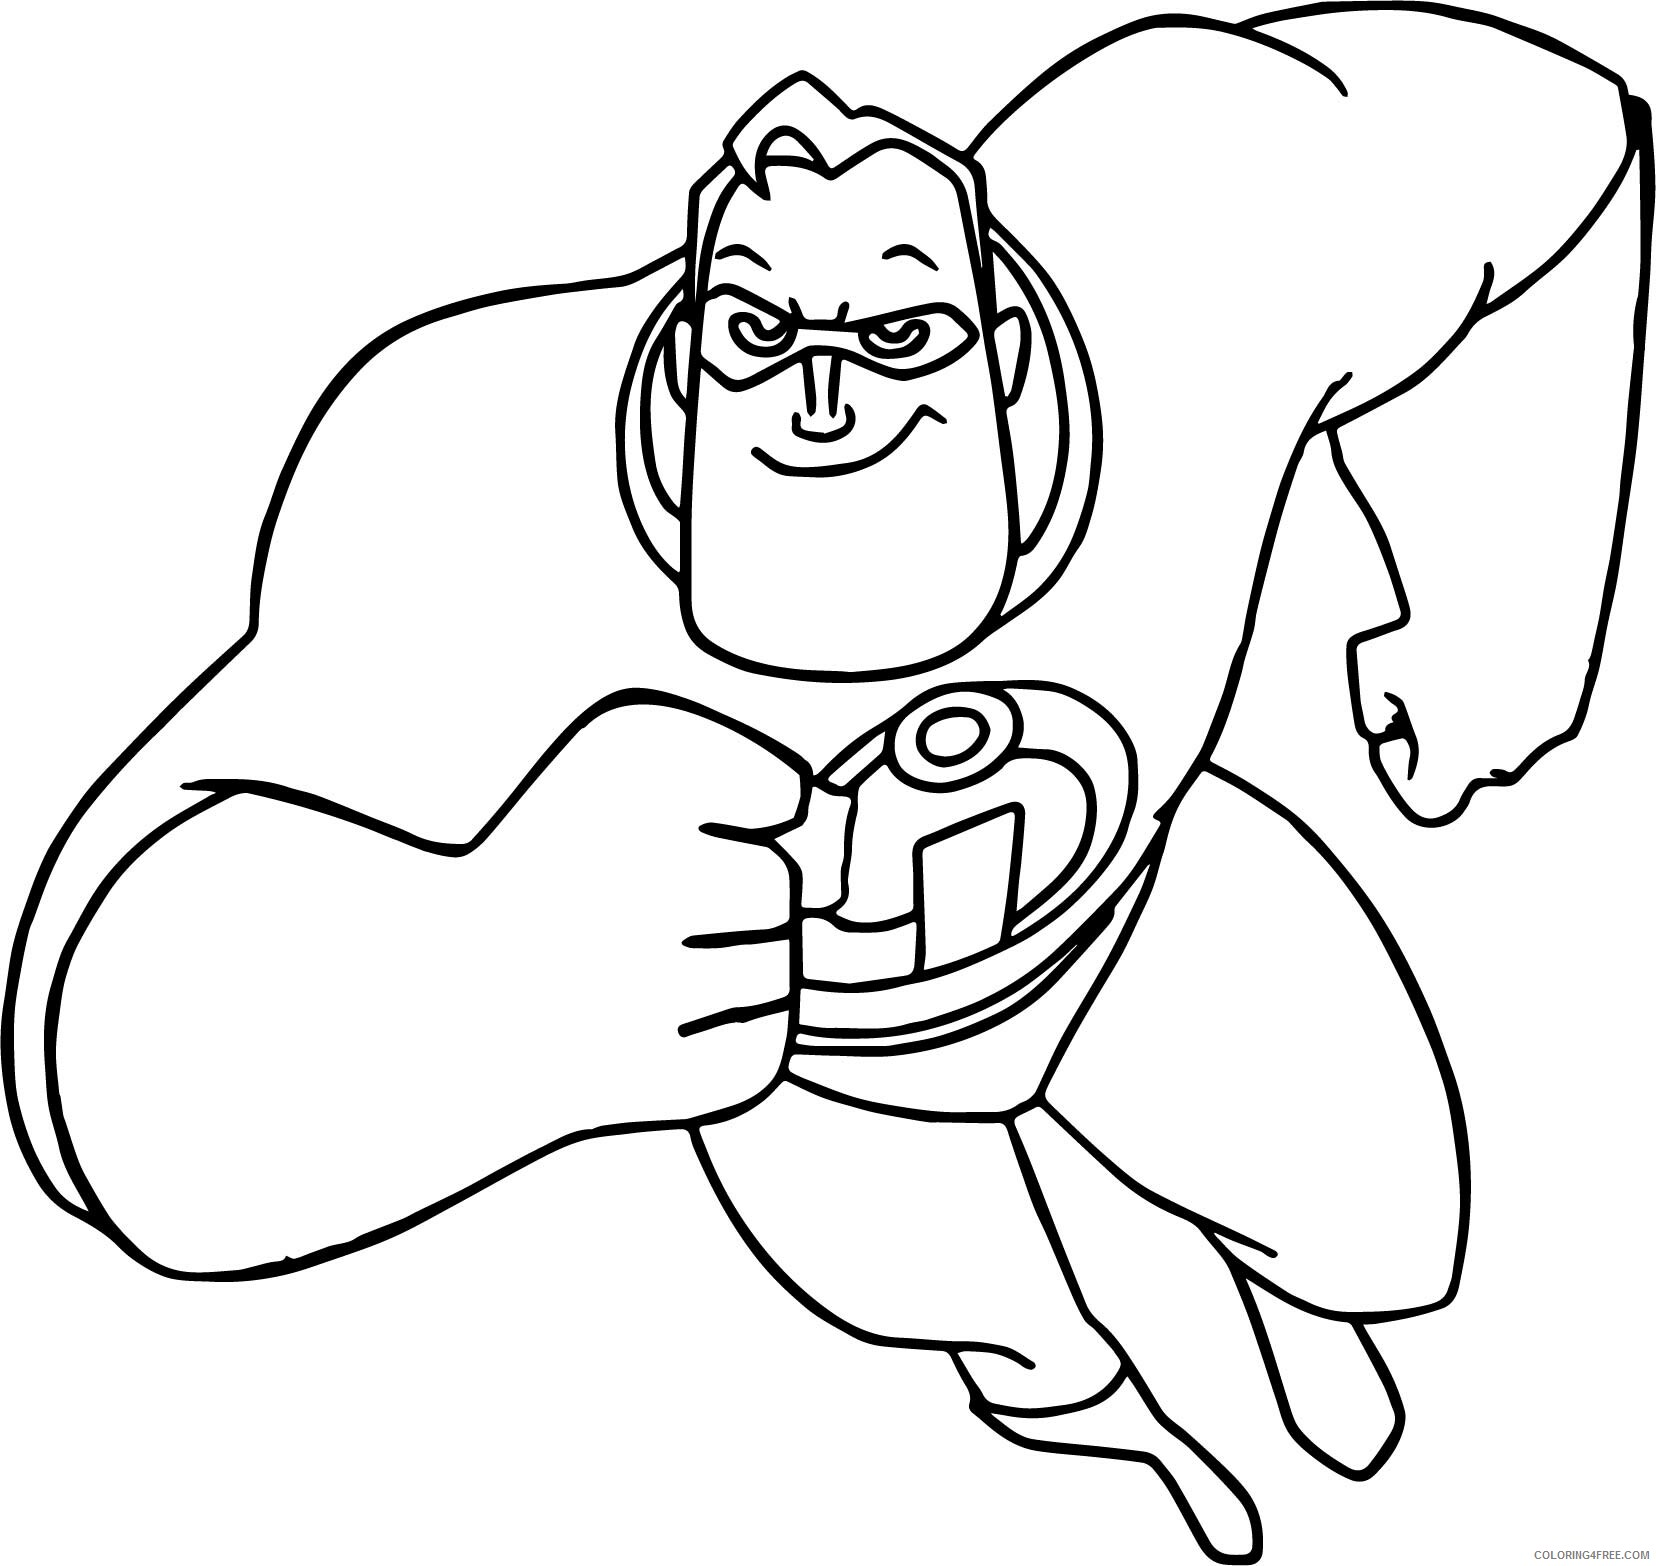 The Incredibles Coloring Pages TV Film Printable 2020 08853 Coloring4free